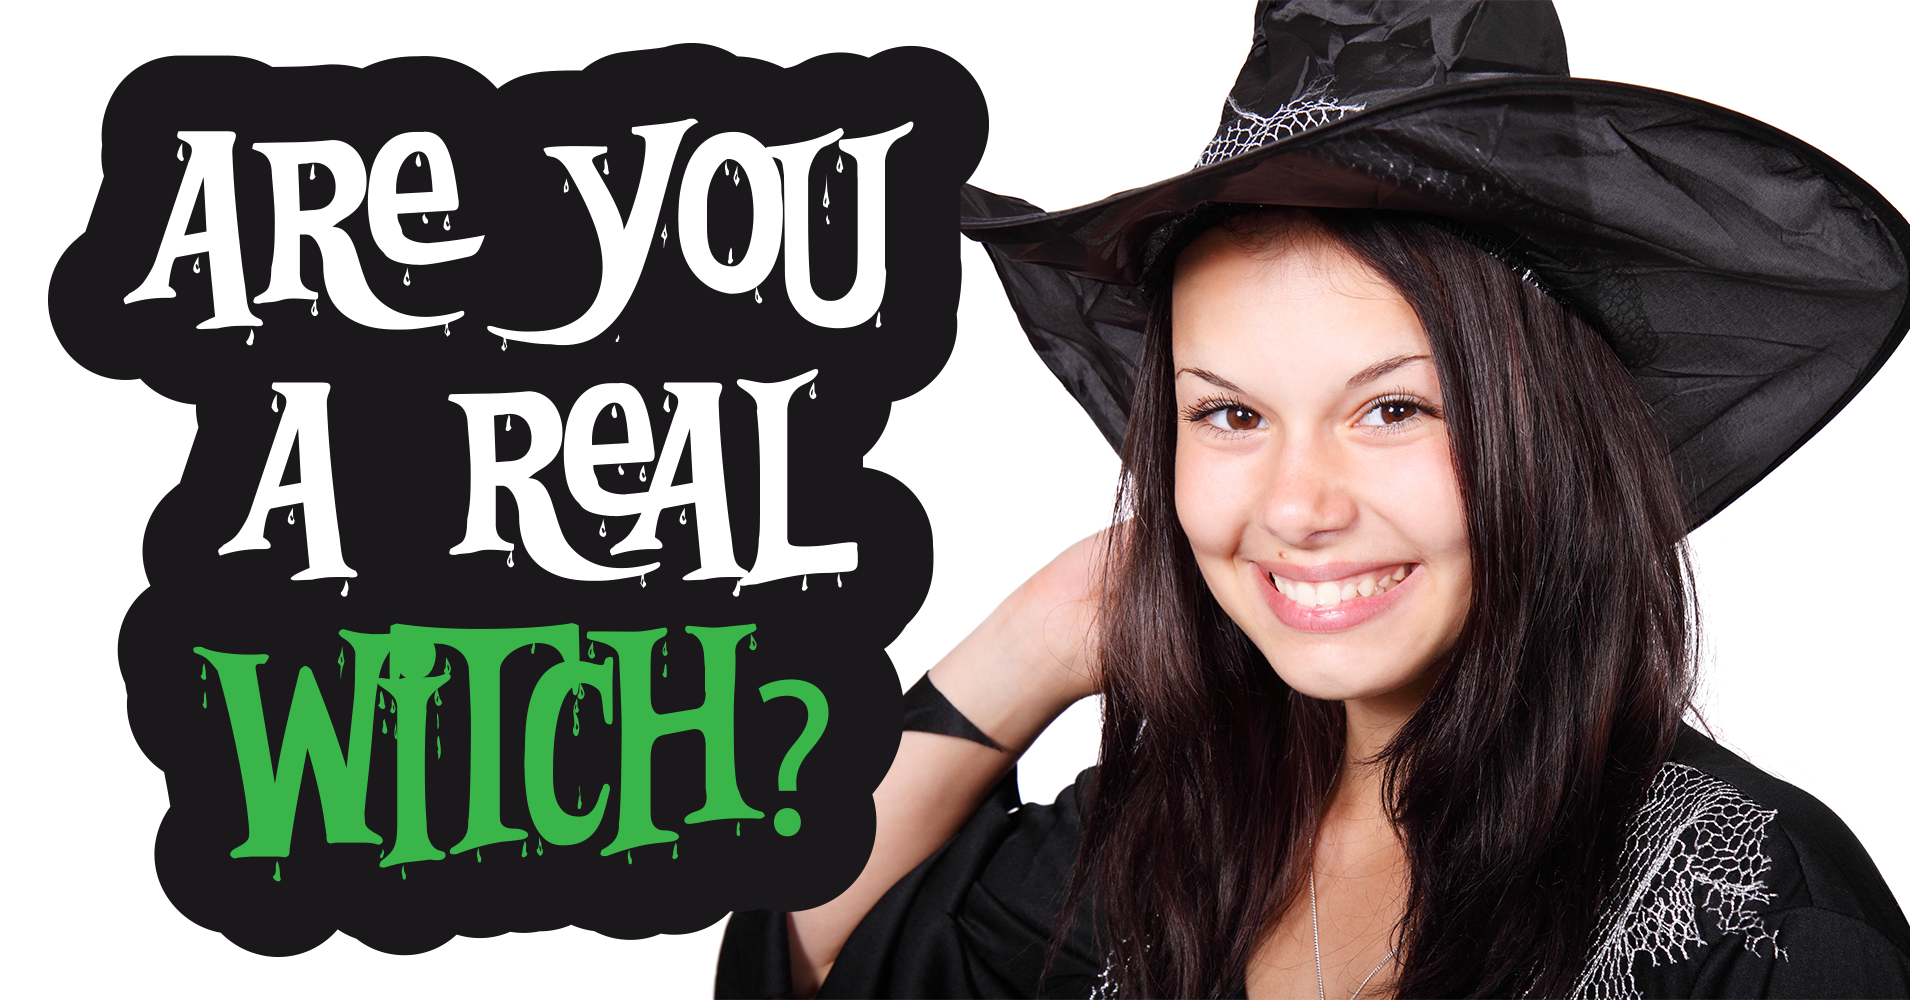 Witch Test: Are You A Real Witch? - Quiz - Quizony com